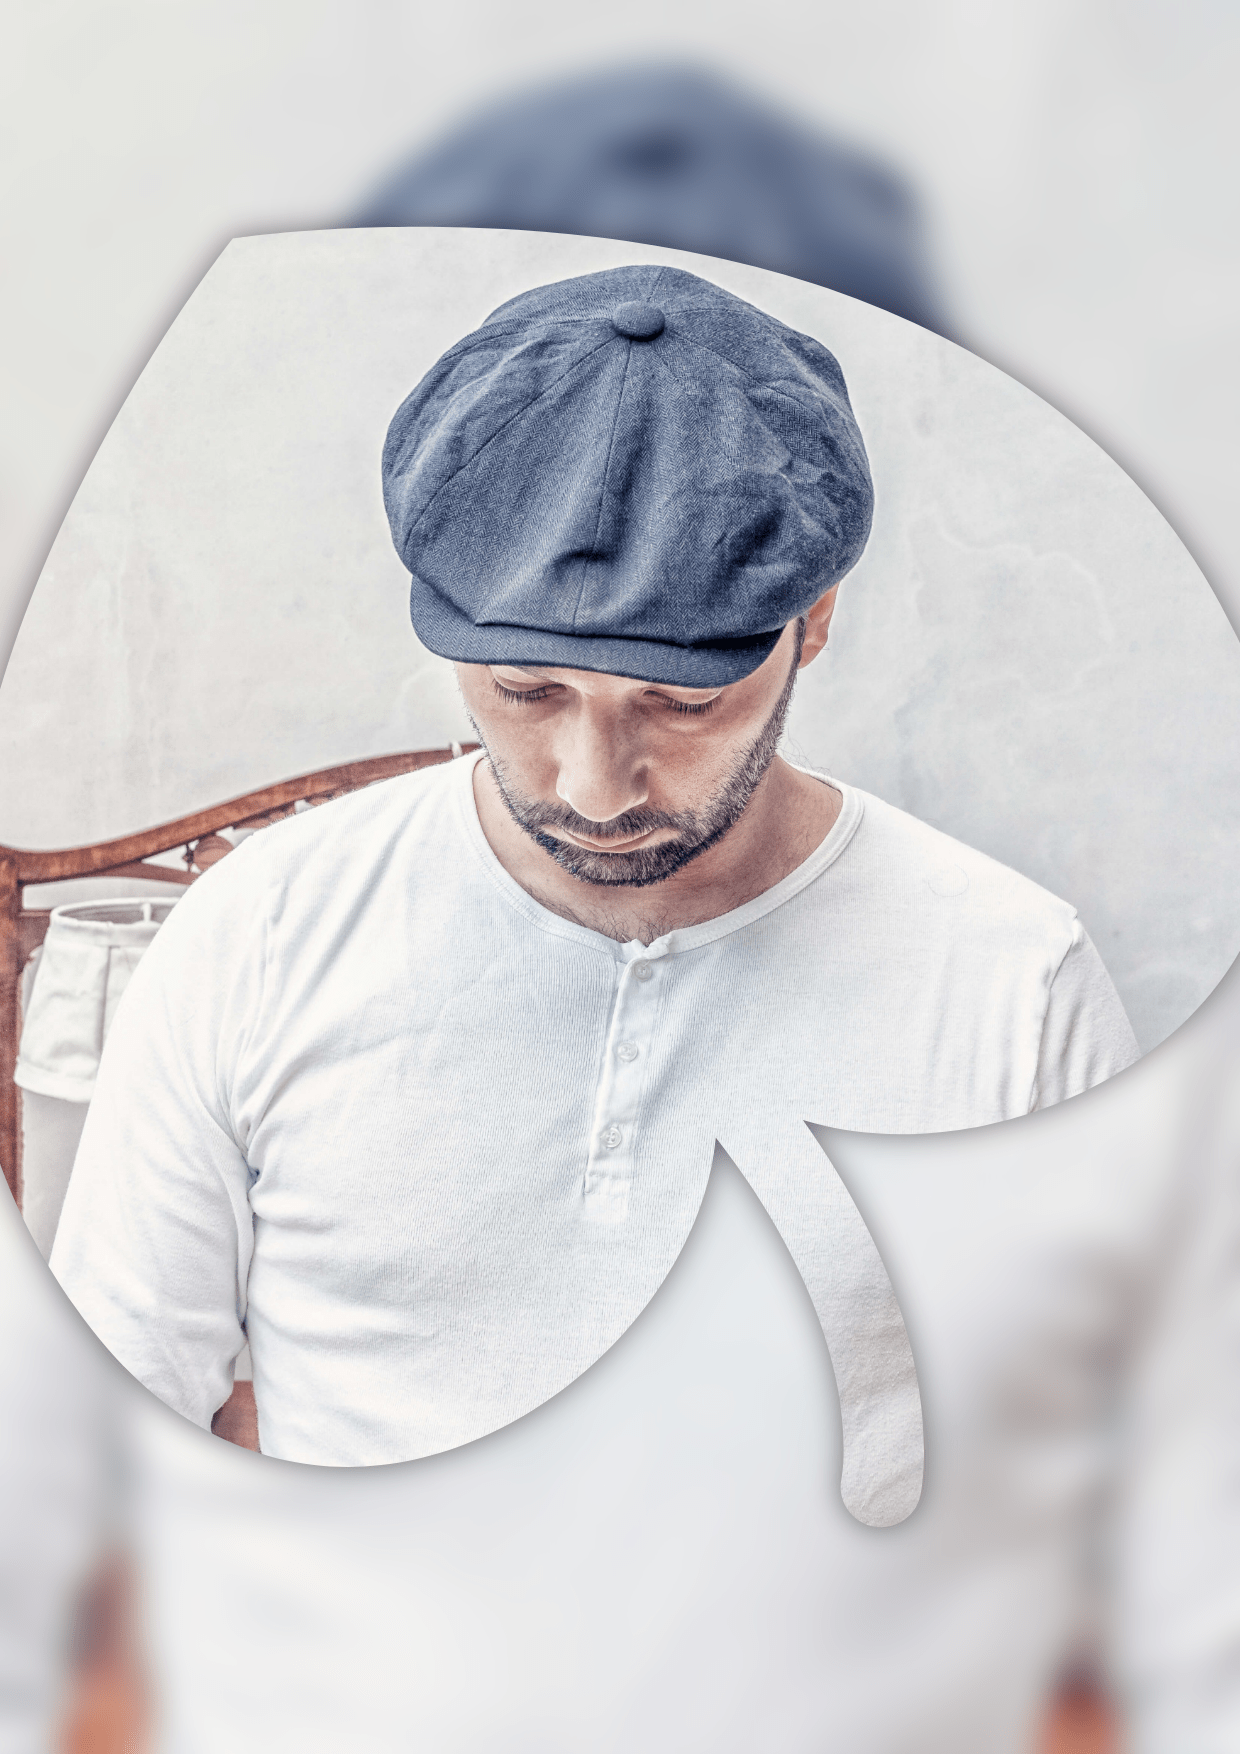 White,                Clothing,                Person,                Cap,                Hat,                Image,                Avatar,                 Free Image